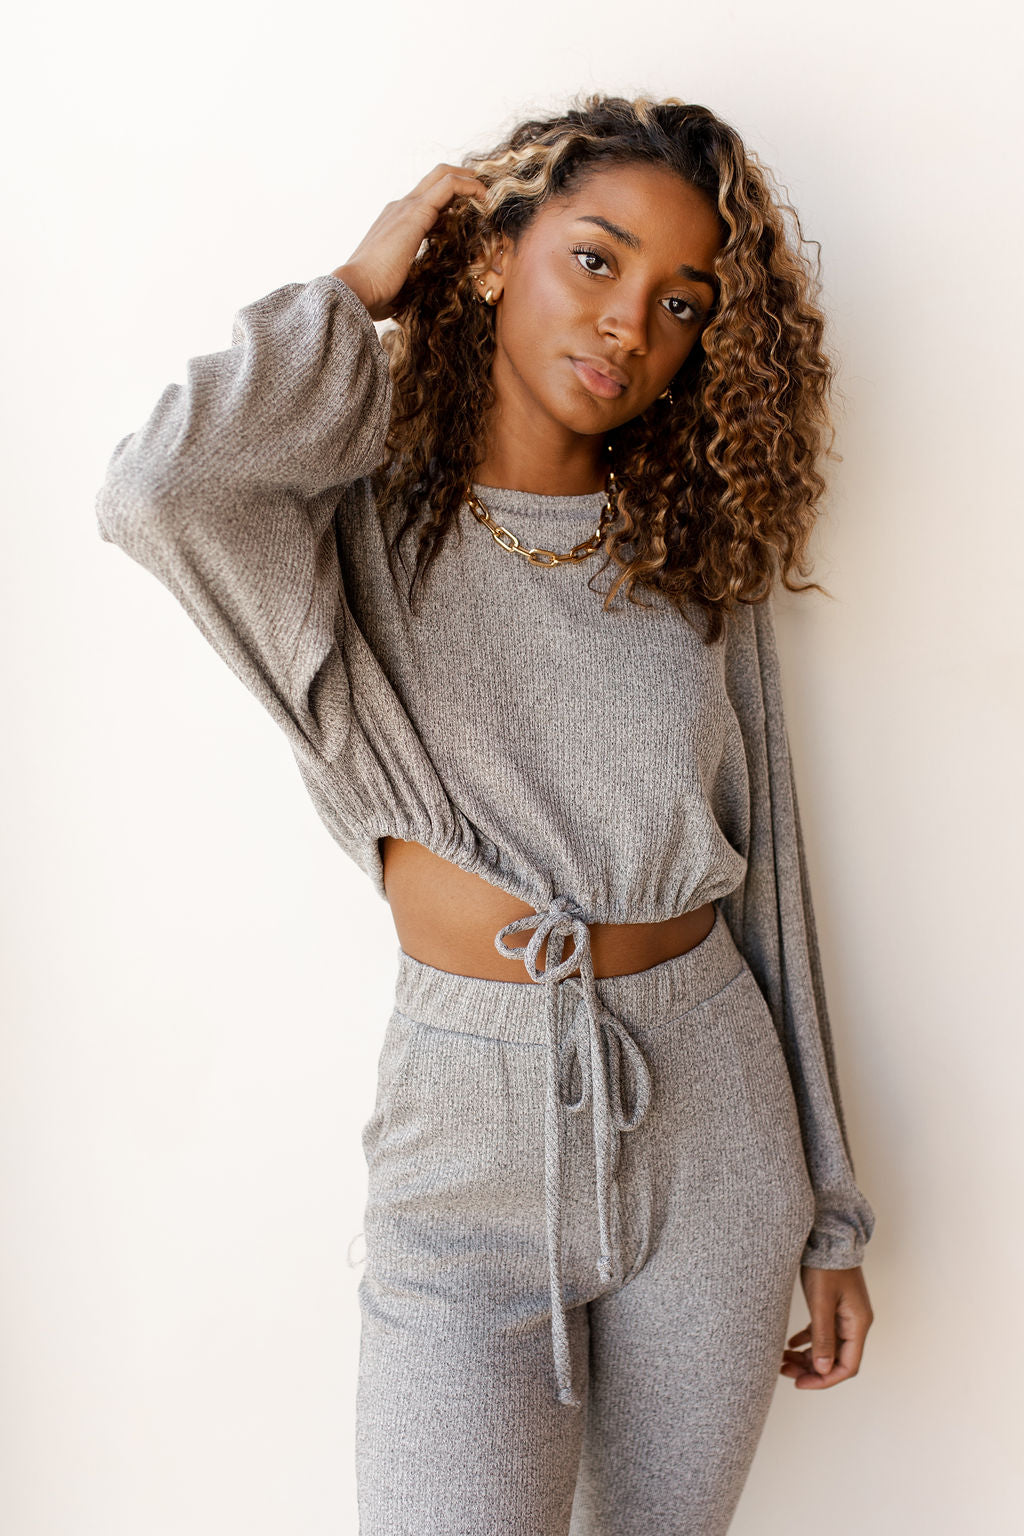 static knit crop